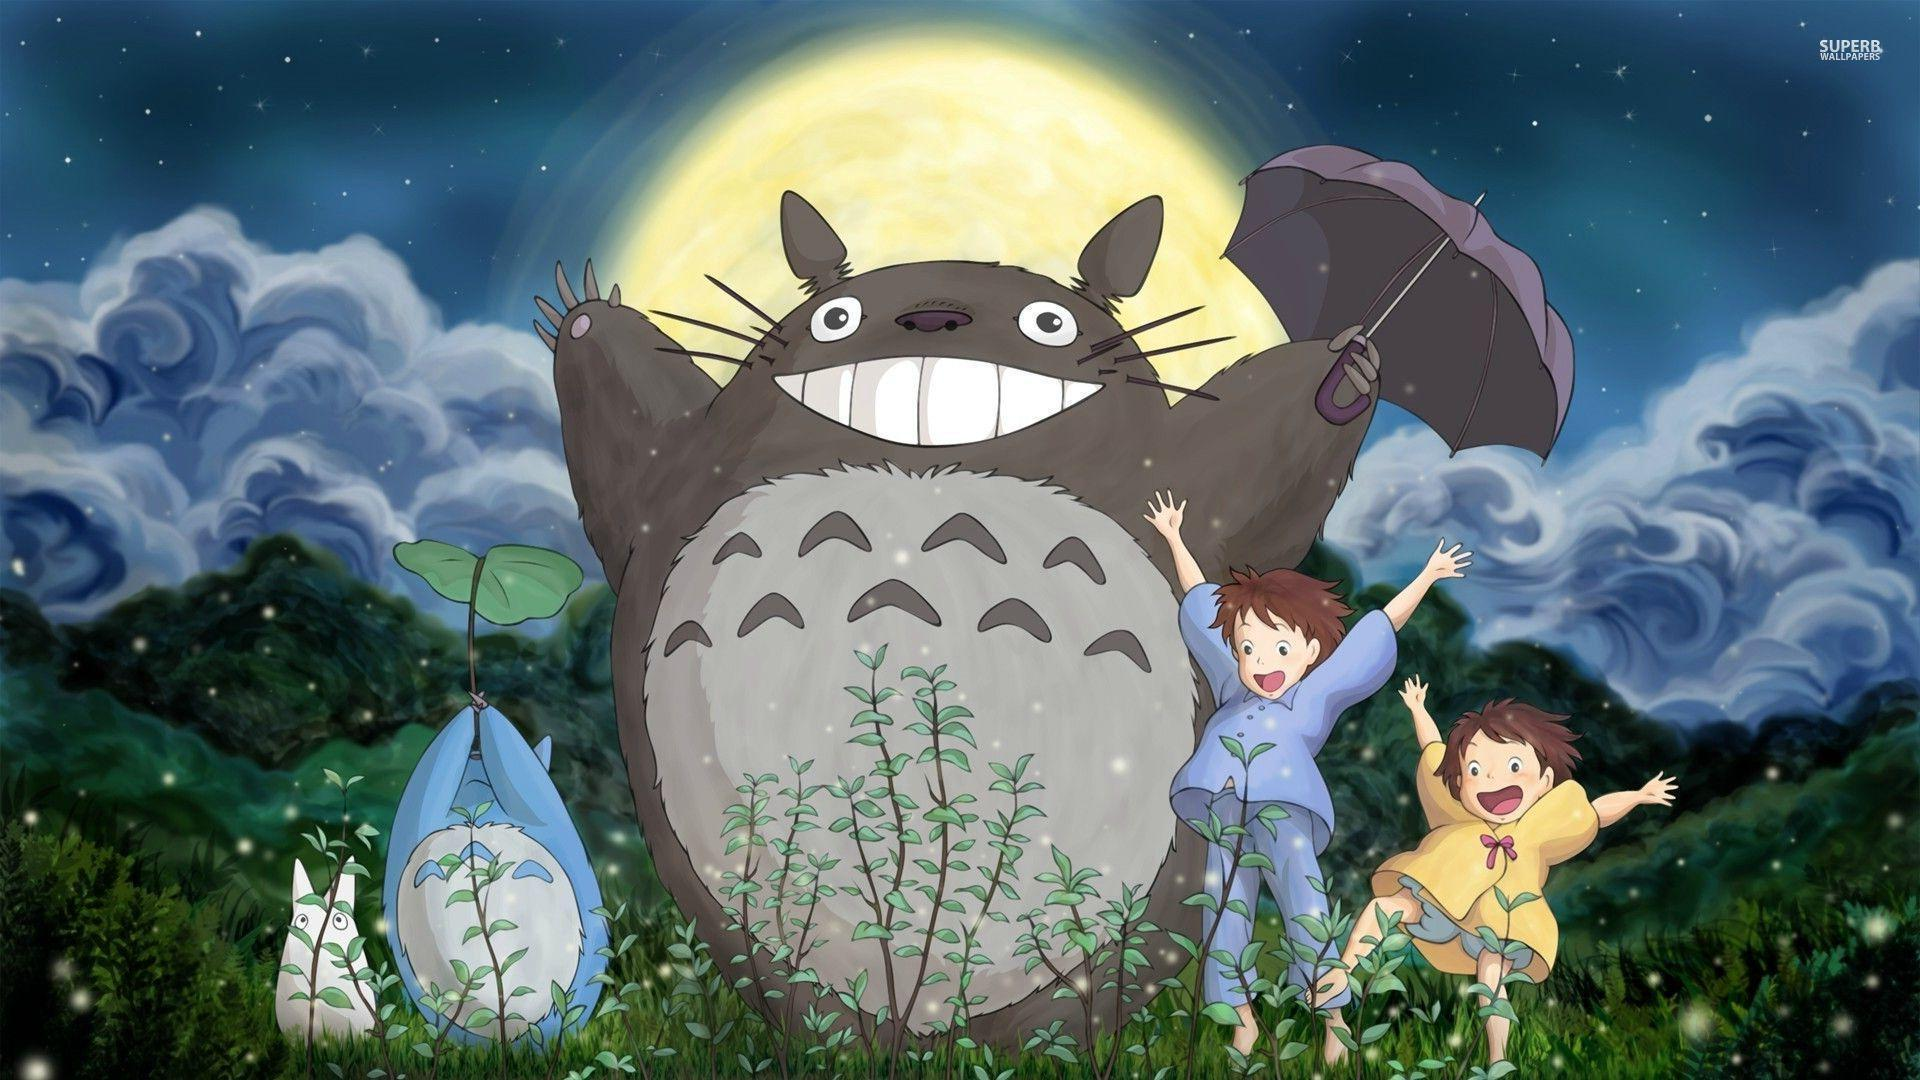 Totoro Wallpapers HD - Wallpaper Cave